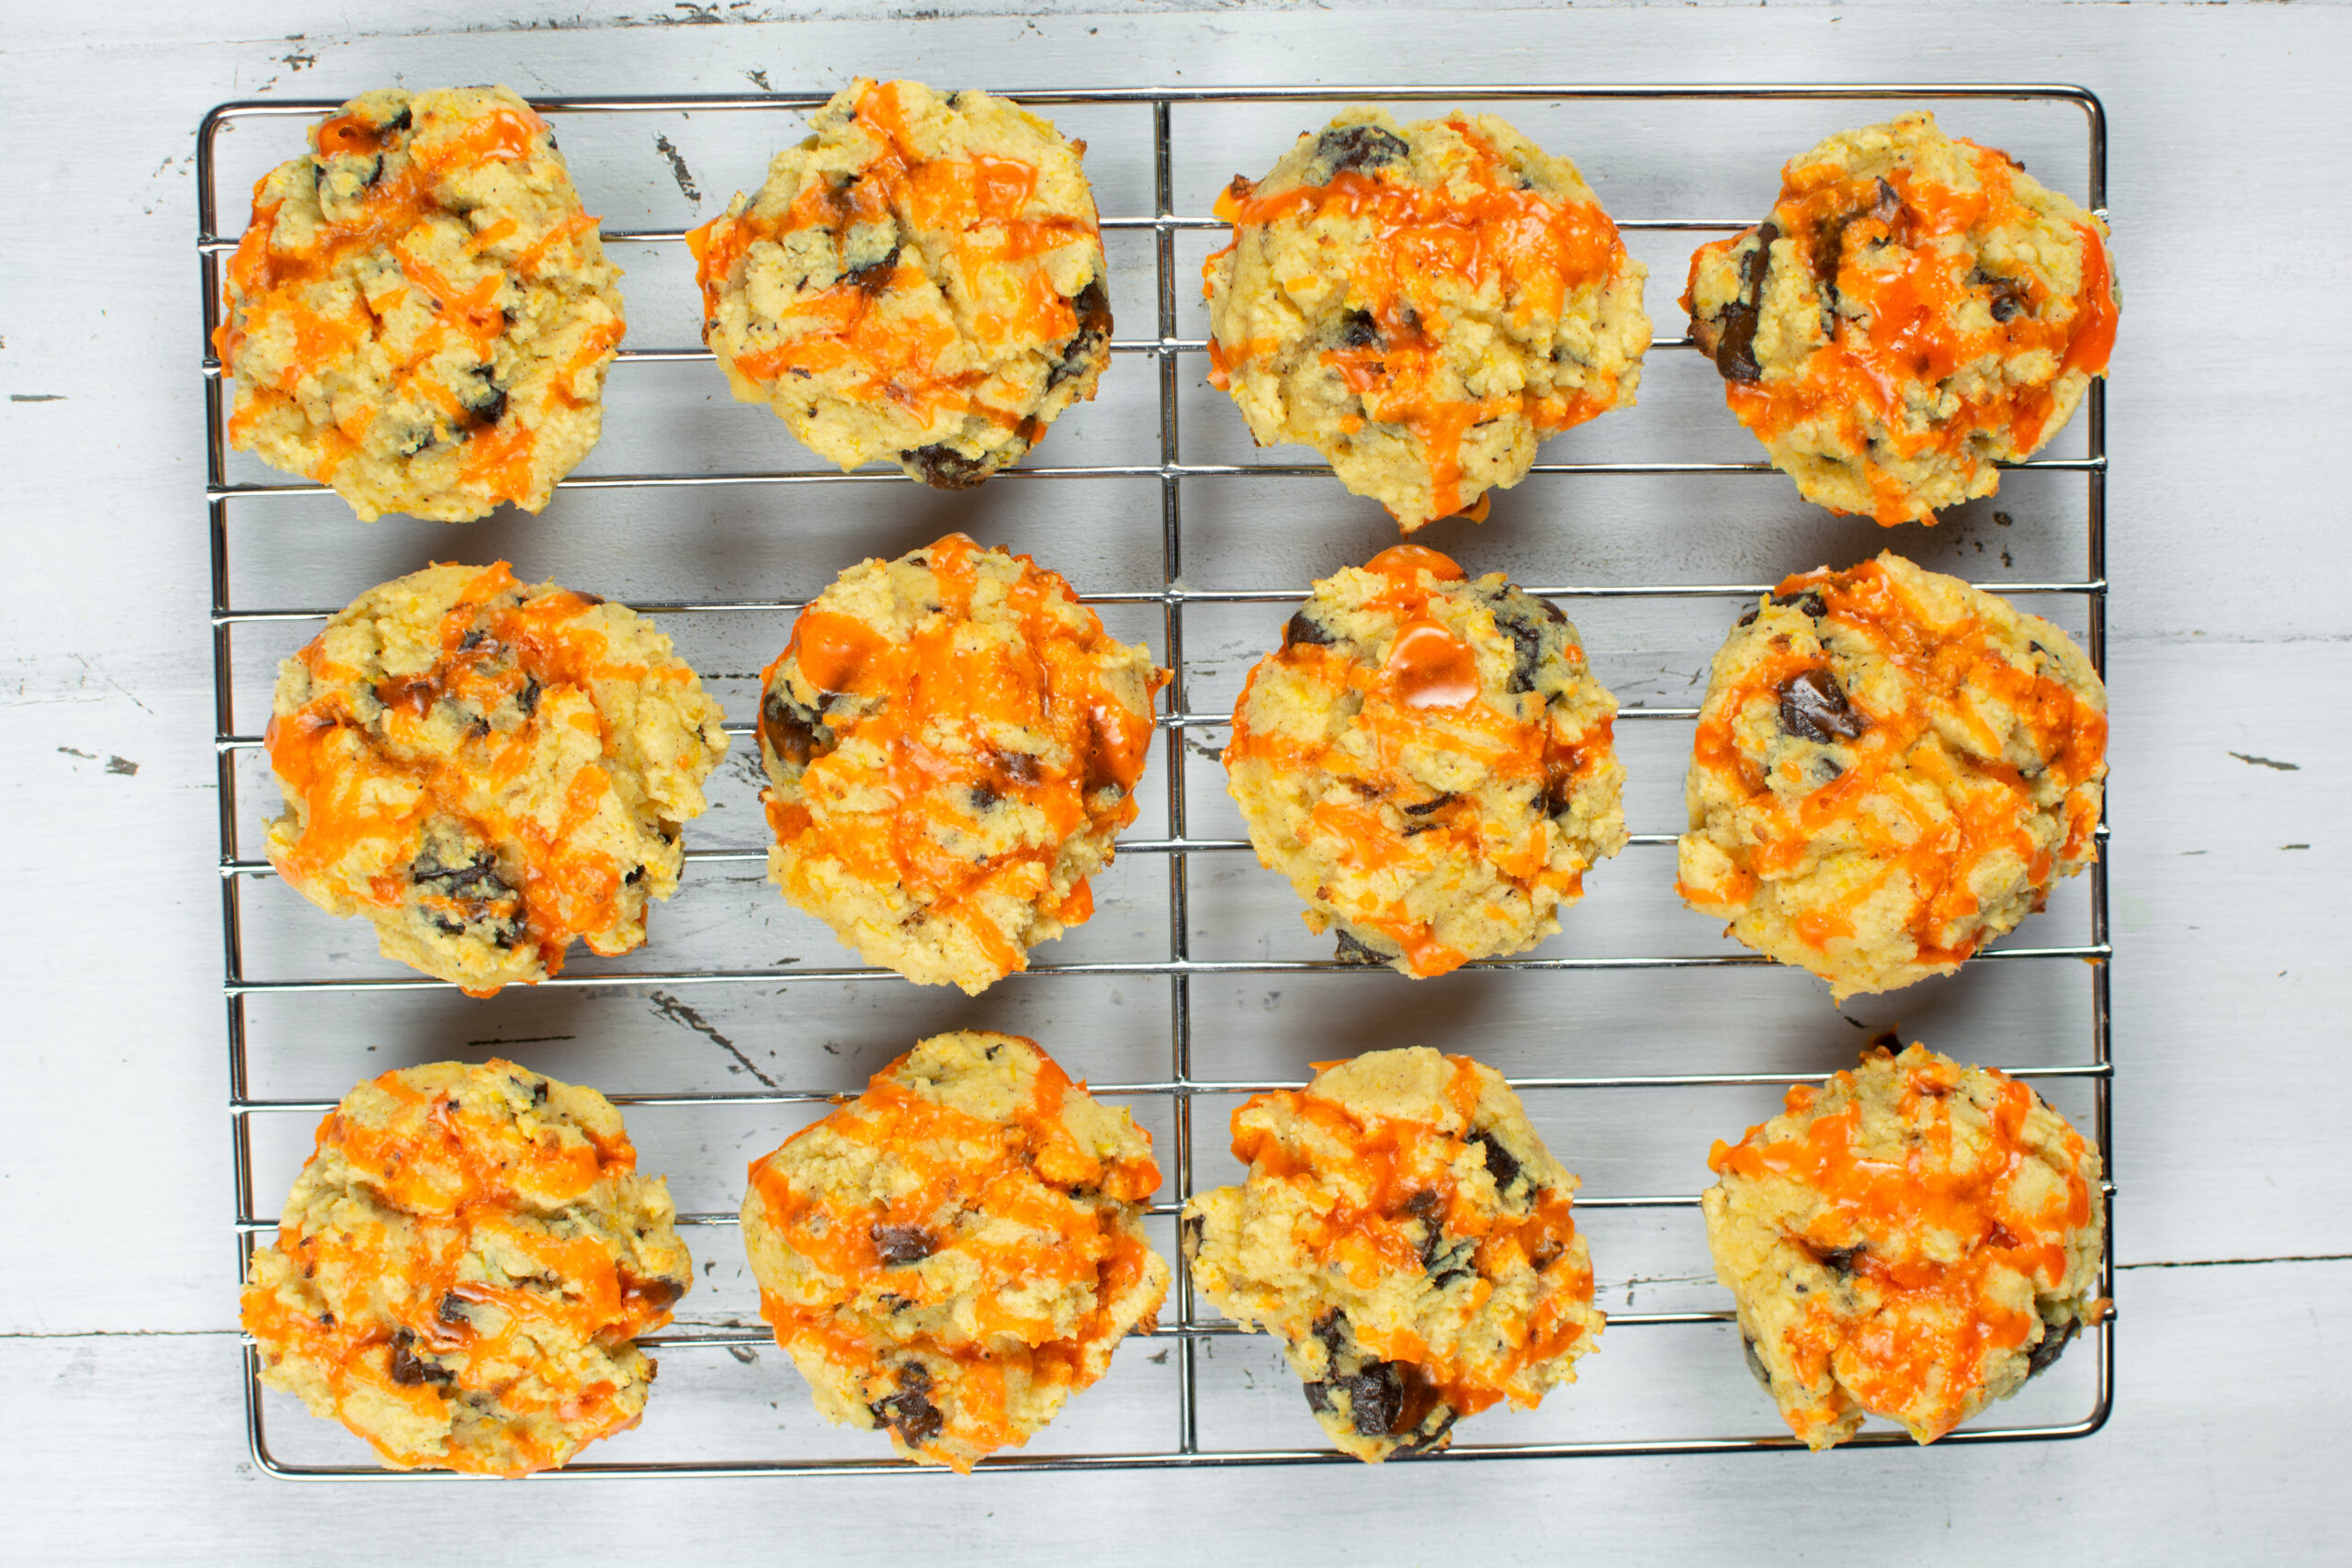 Baked Cookies for Keto Chocolate Chip Pumpkin Cookies Recipe